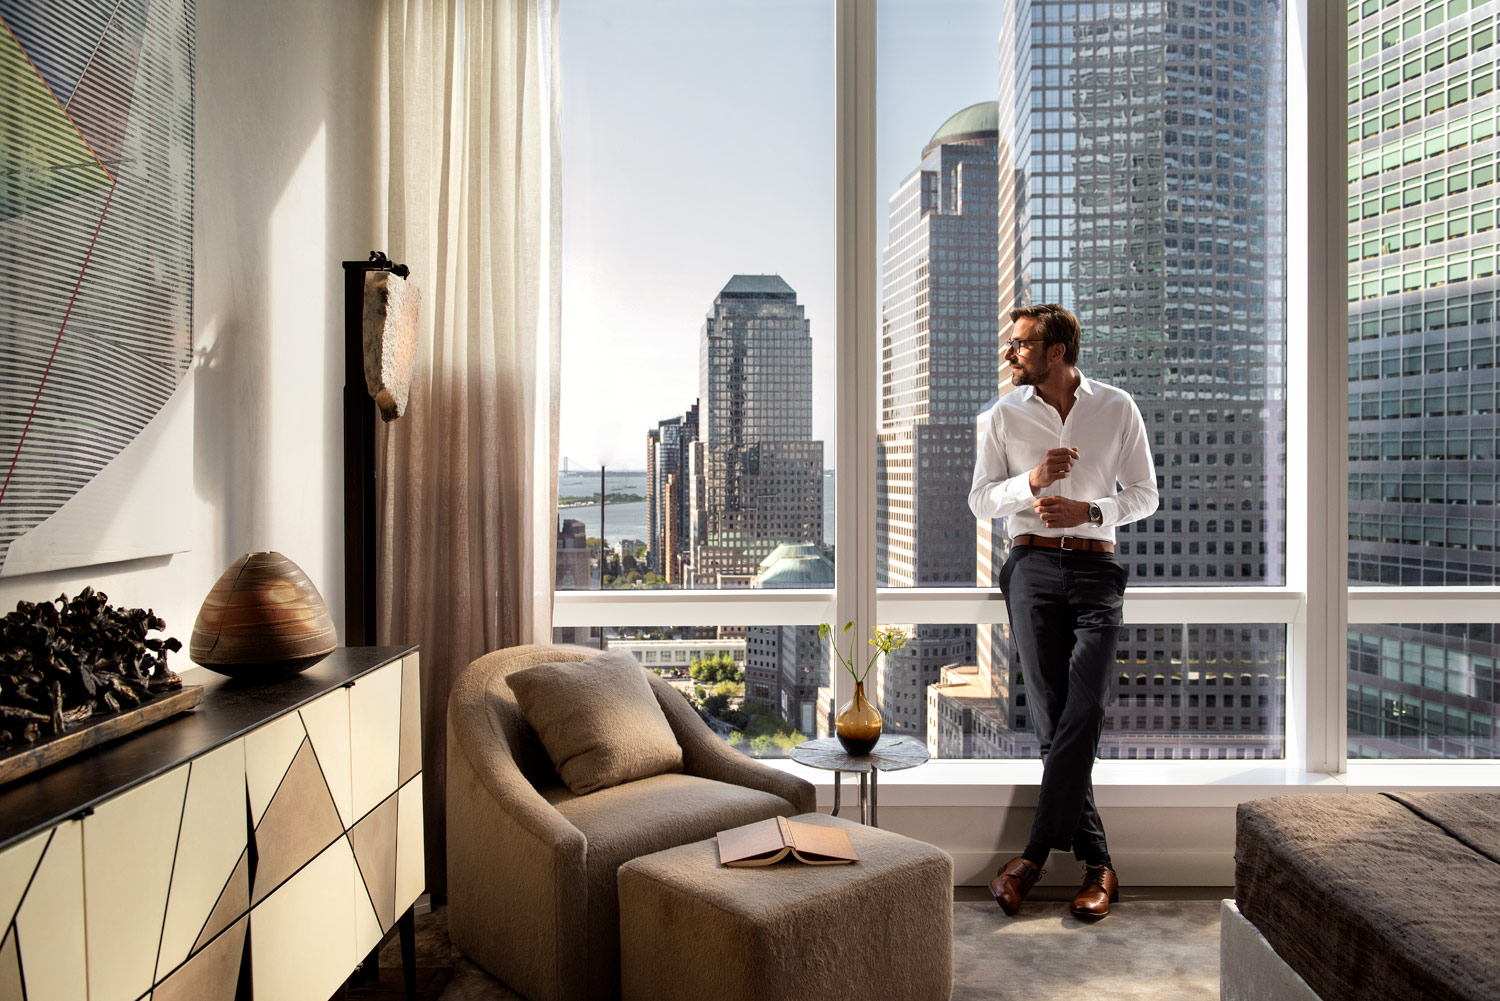 man in bedroom, luxury condominium overlooking downtown New York